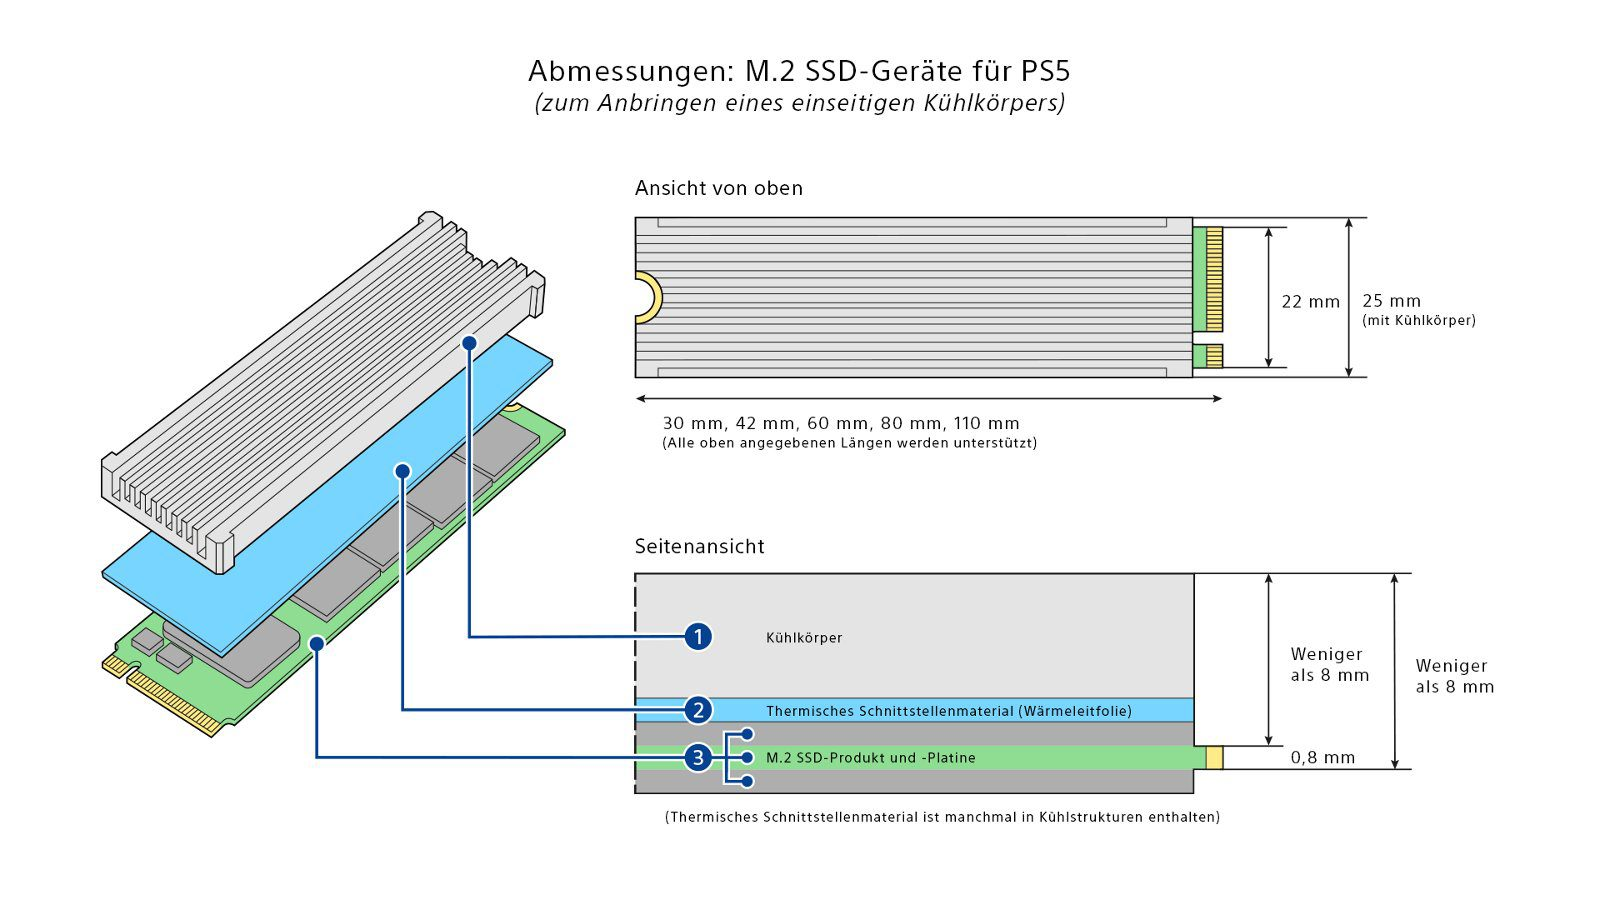 PS5 M.2-SSD